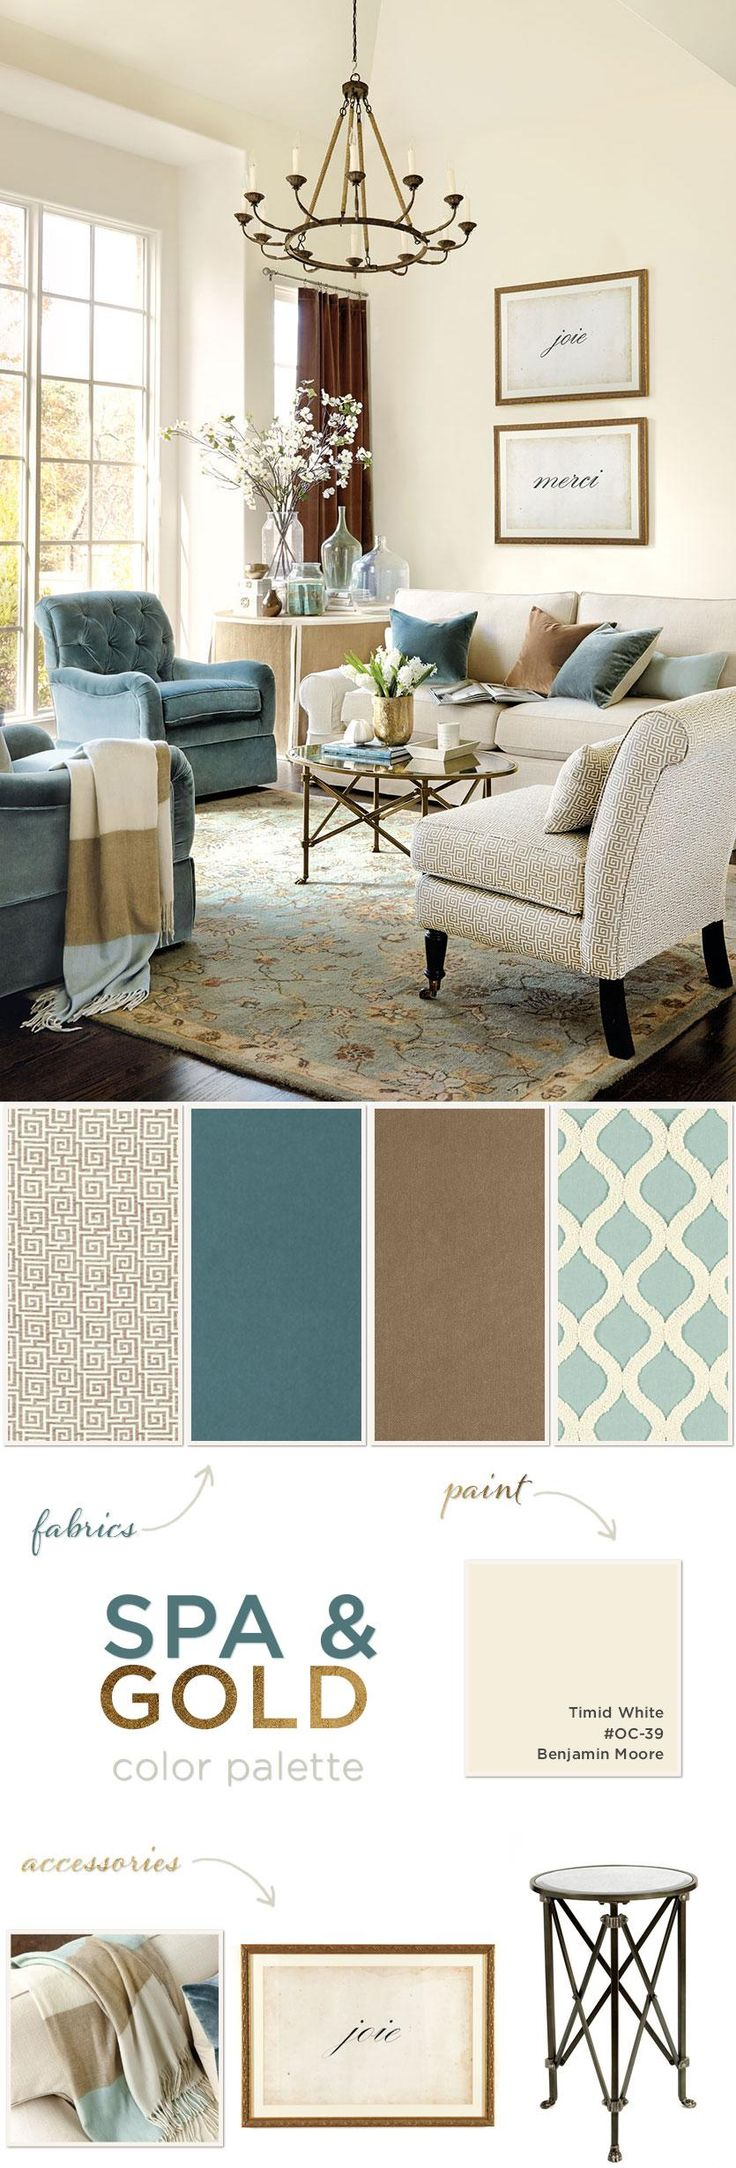 Amazing Inspired Color Palettes For Spring 2014. Living Room ...